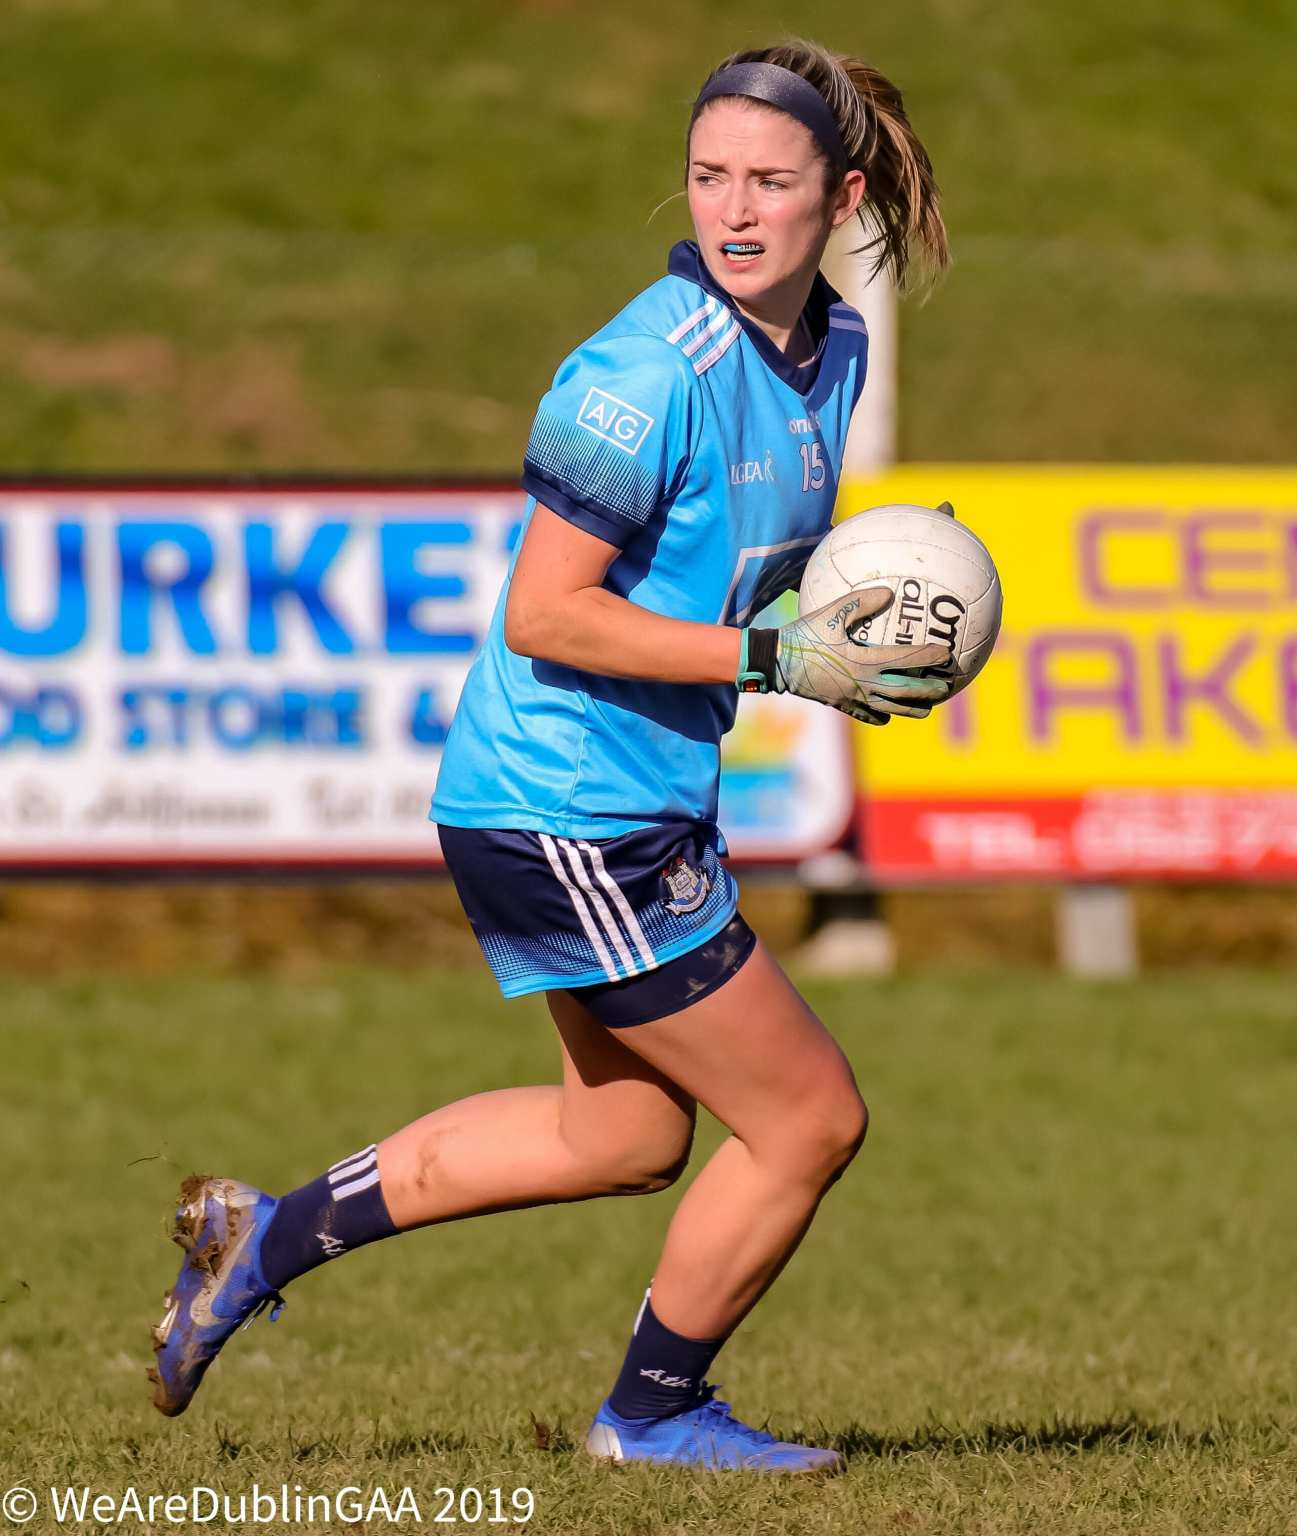 Dublin Ladies footballer Siobhan Killeen is out of action for six months as Dublin suffer key injuries ahead of the start of the All Ireland series